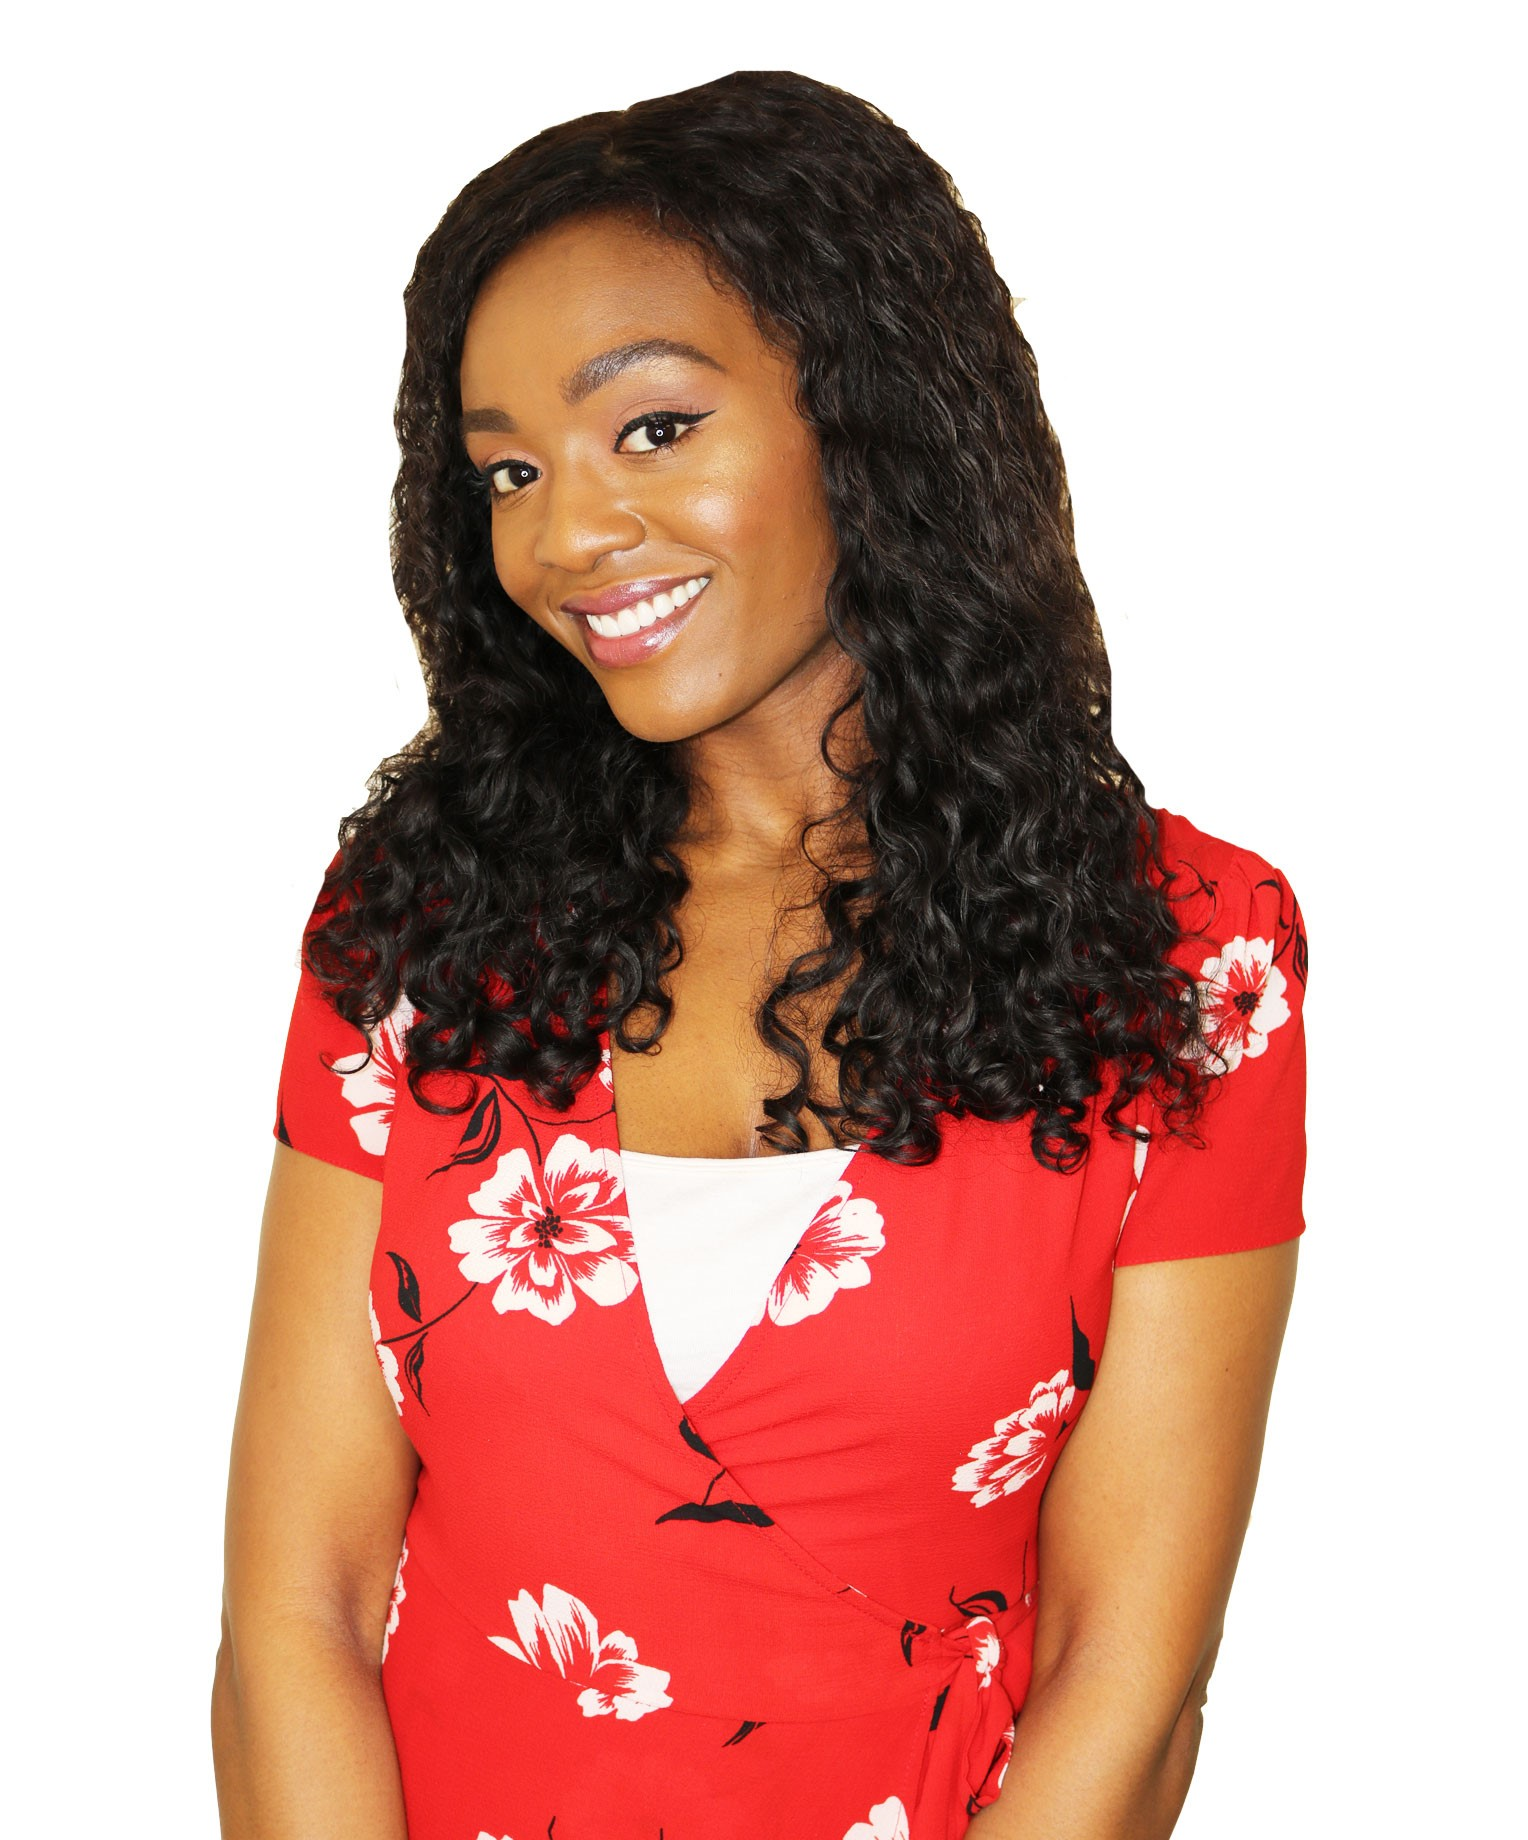 Victoria Adegboyega Social Media and Marketing Executive